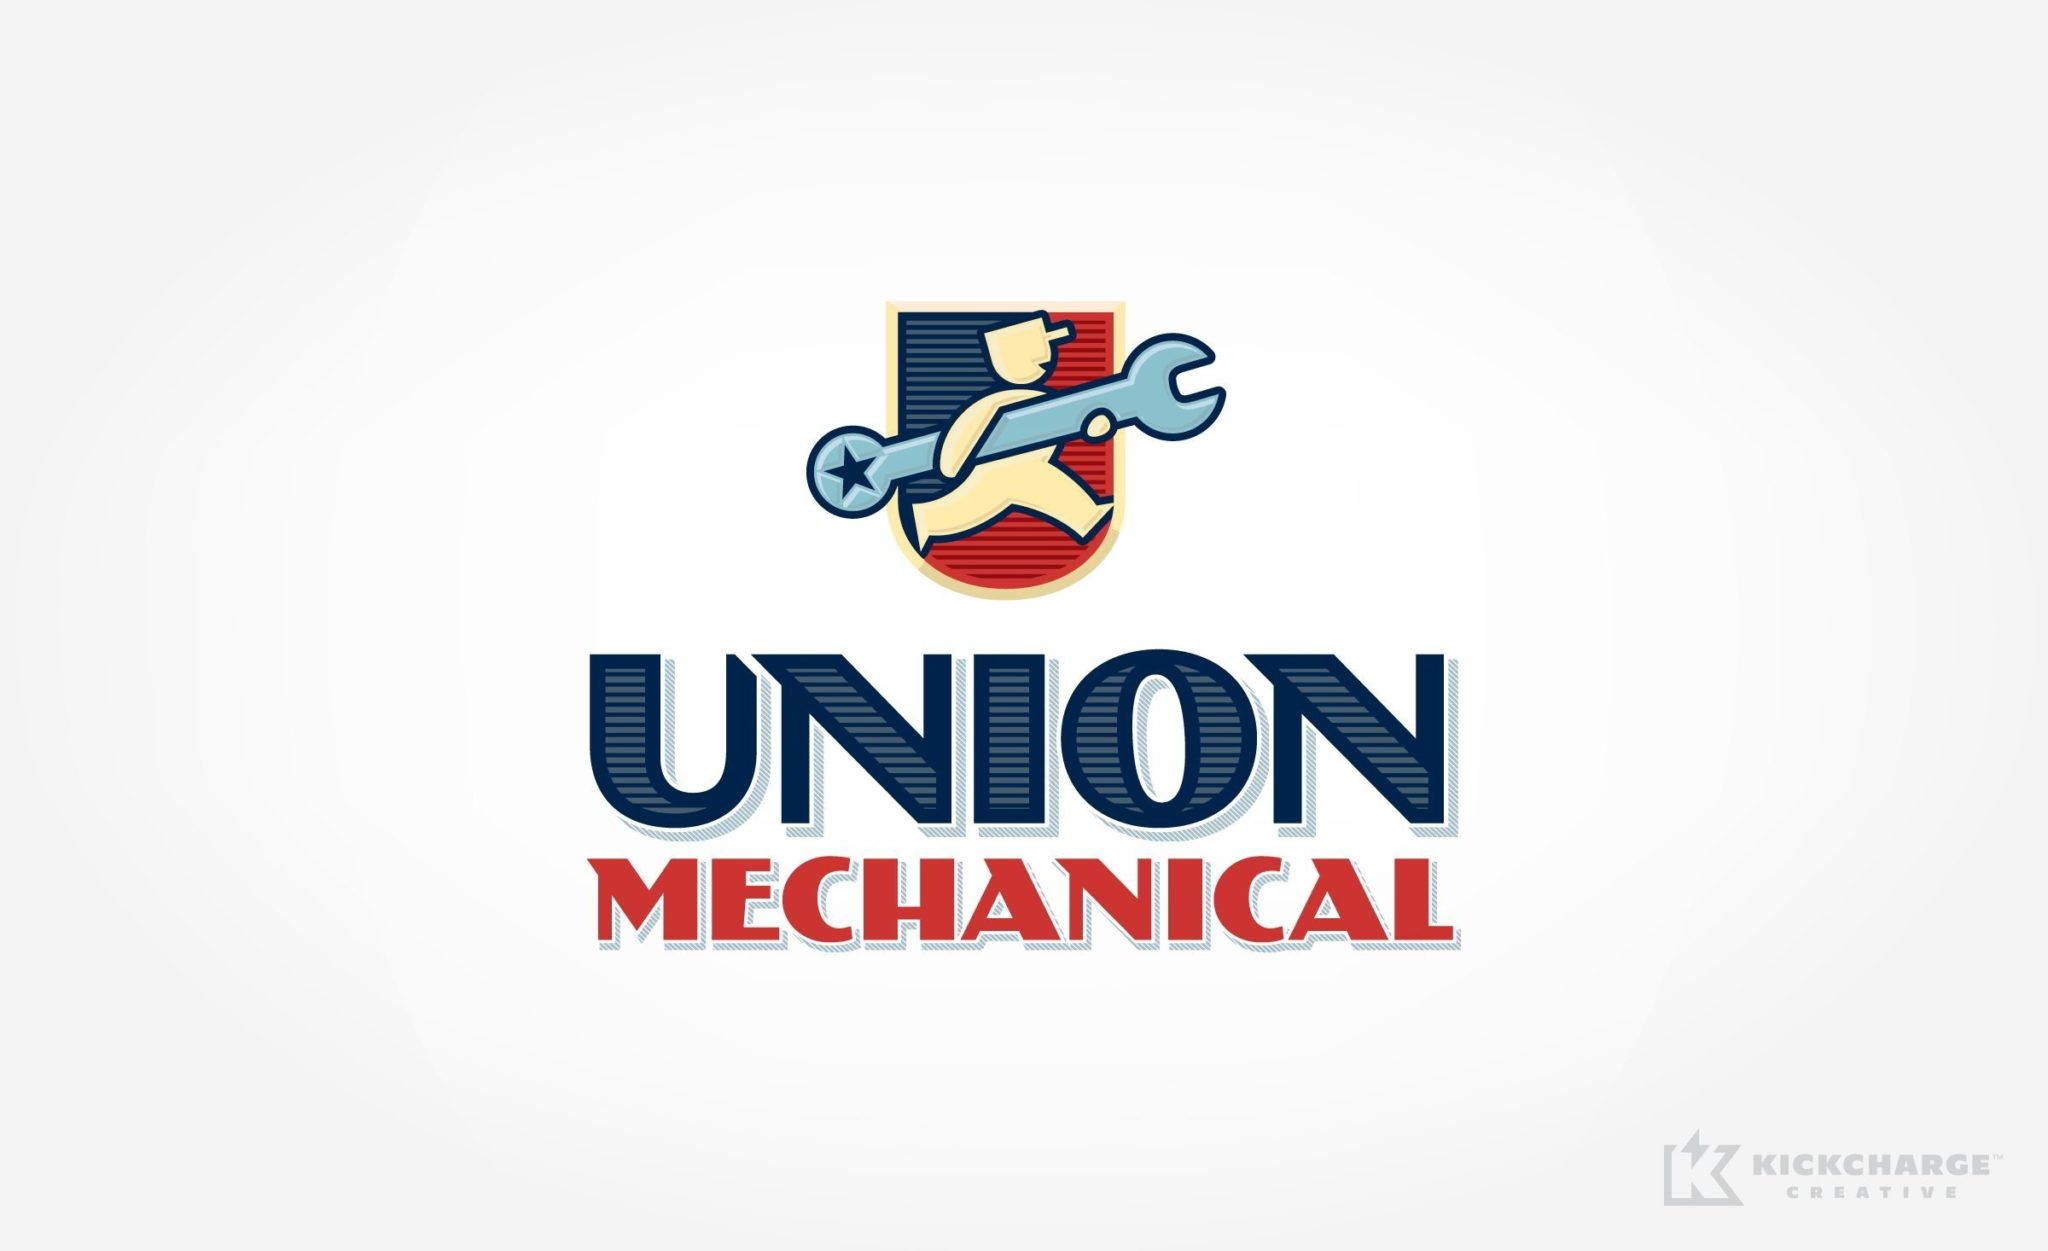 Union Mechanical